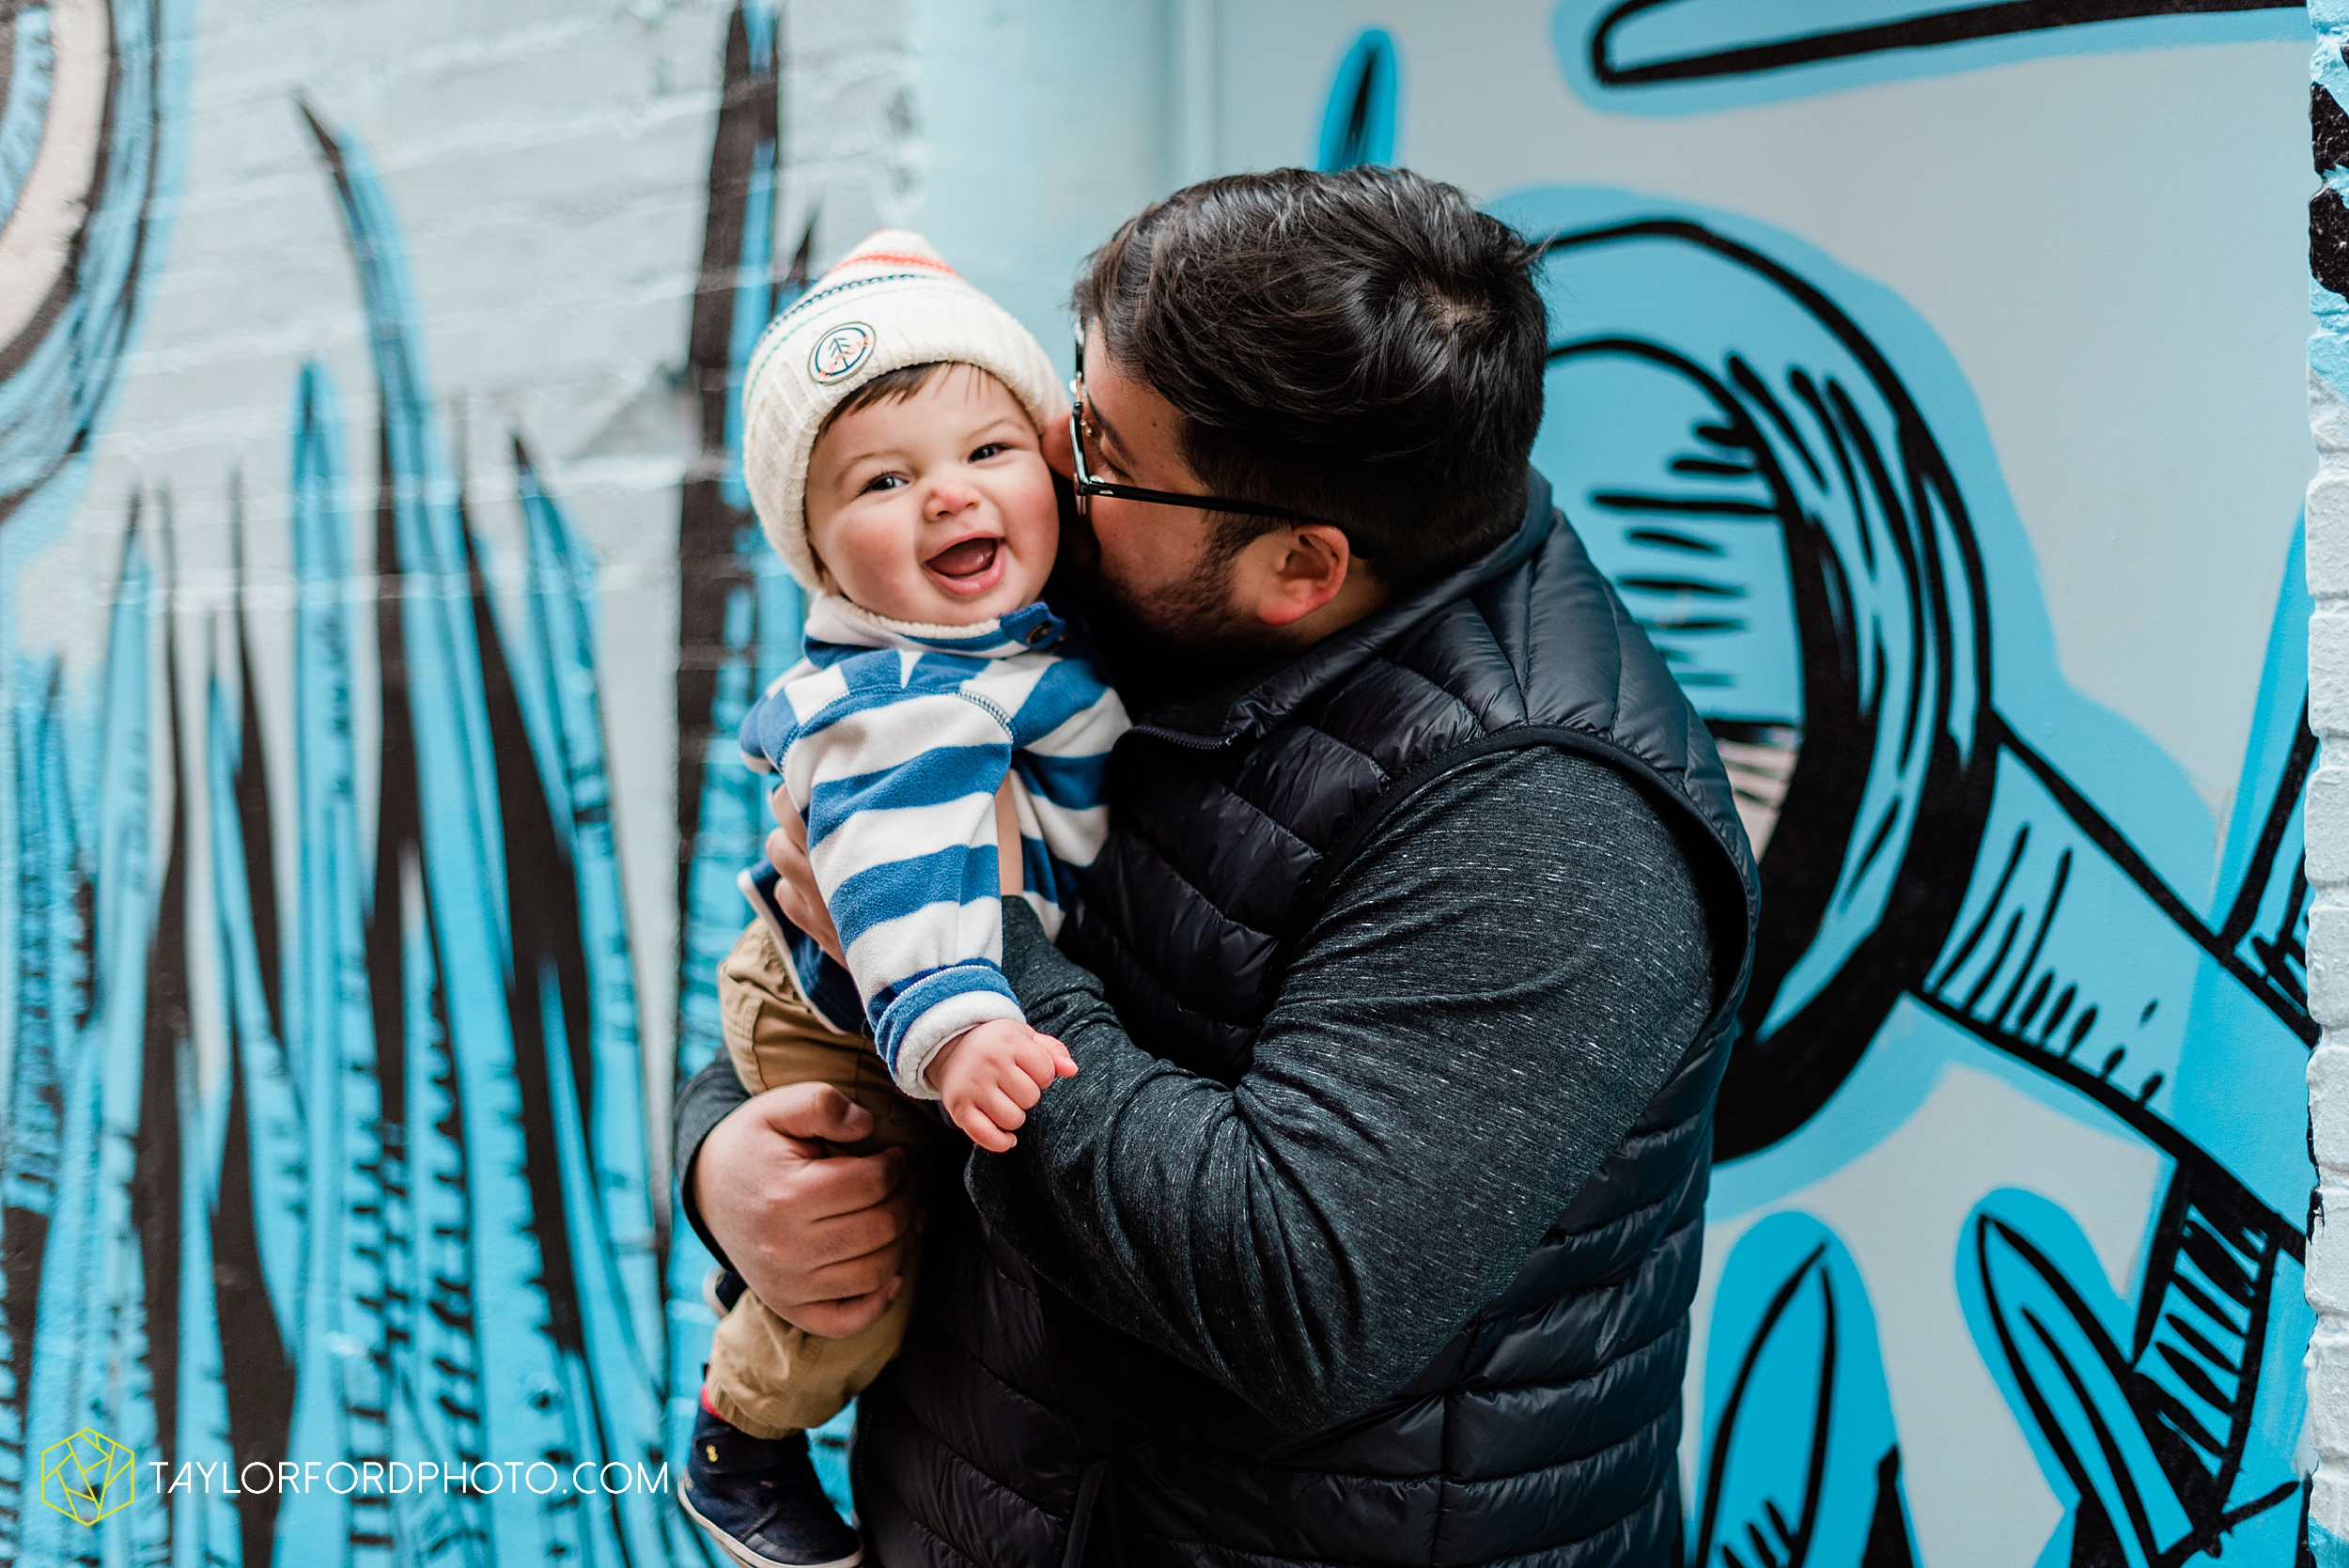 brenna-jose-fort-wayne-indiana-engagement-family-child-downtown-river-greenway-photography-taylor-ford-hirschy-photographer_2315.jpg